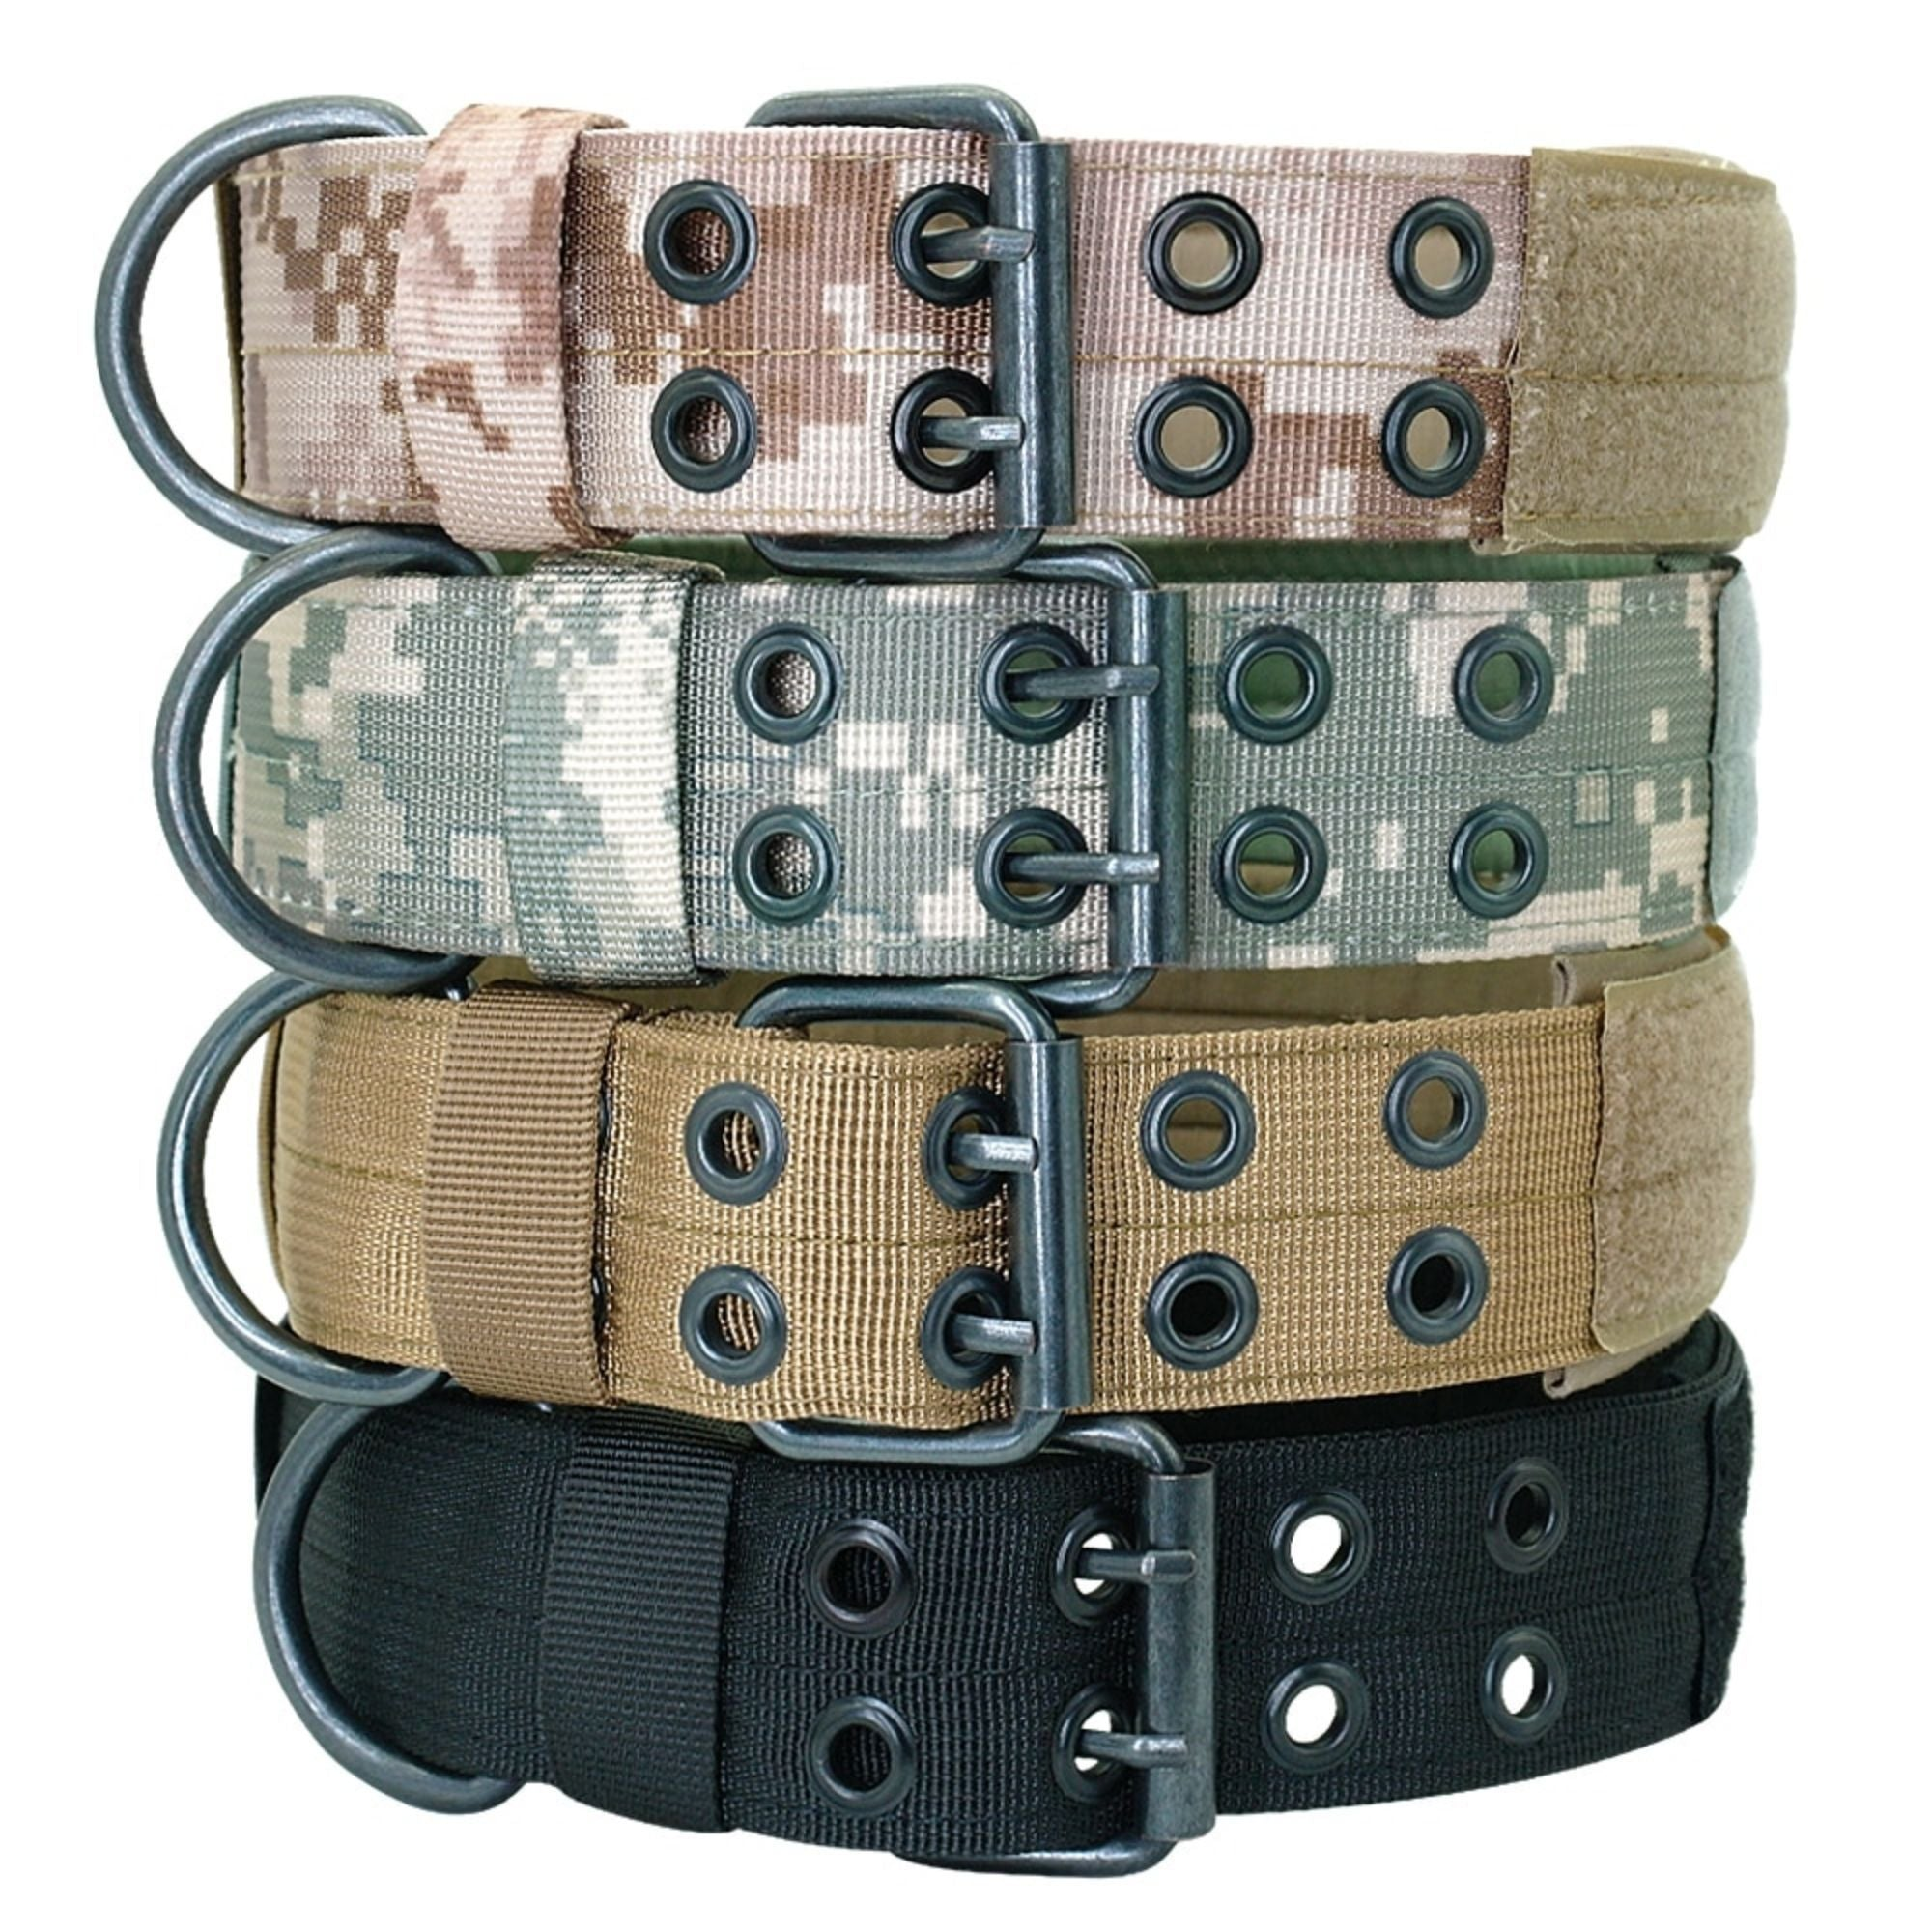 Personalized Tactical Dog Collar - PetBelong